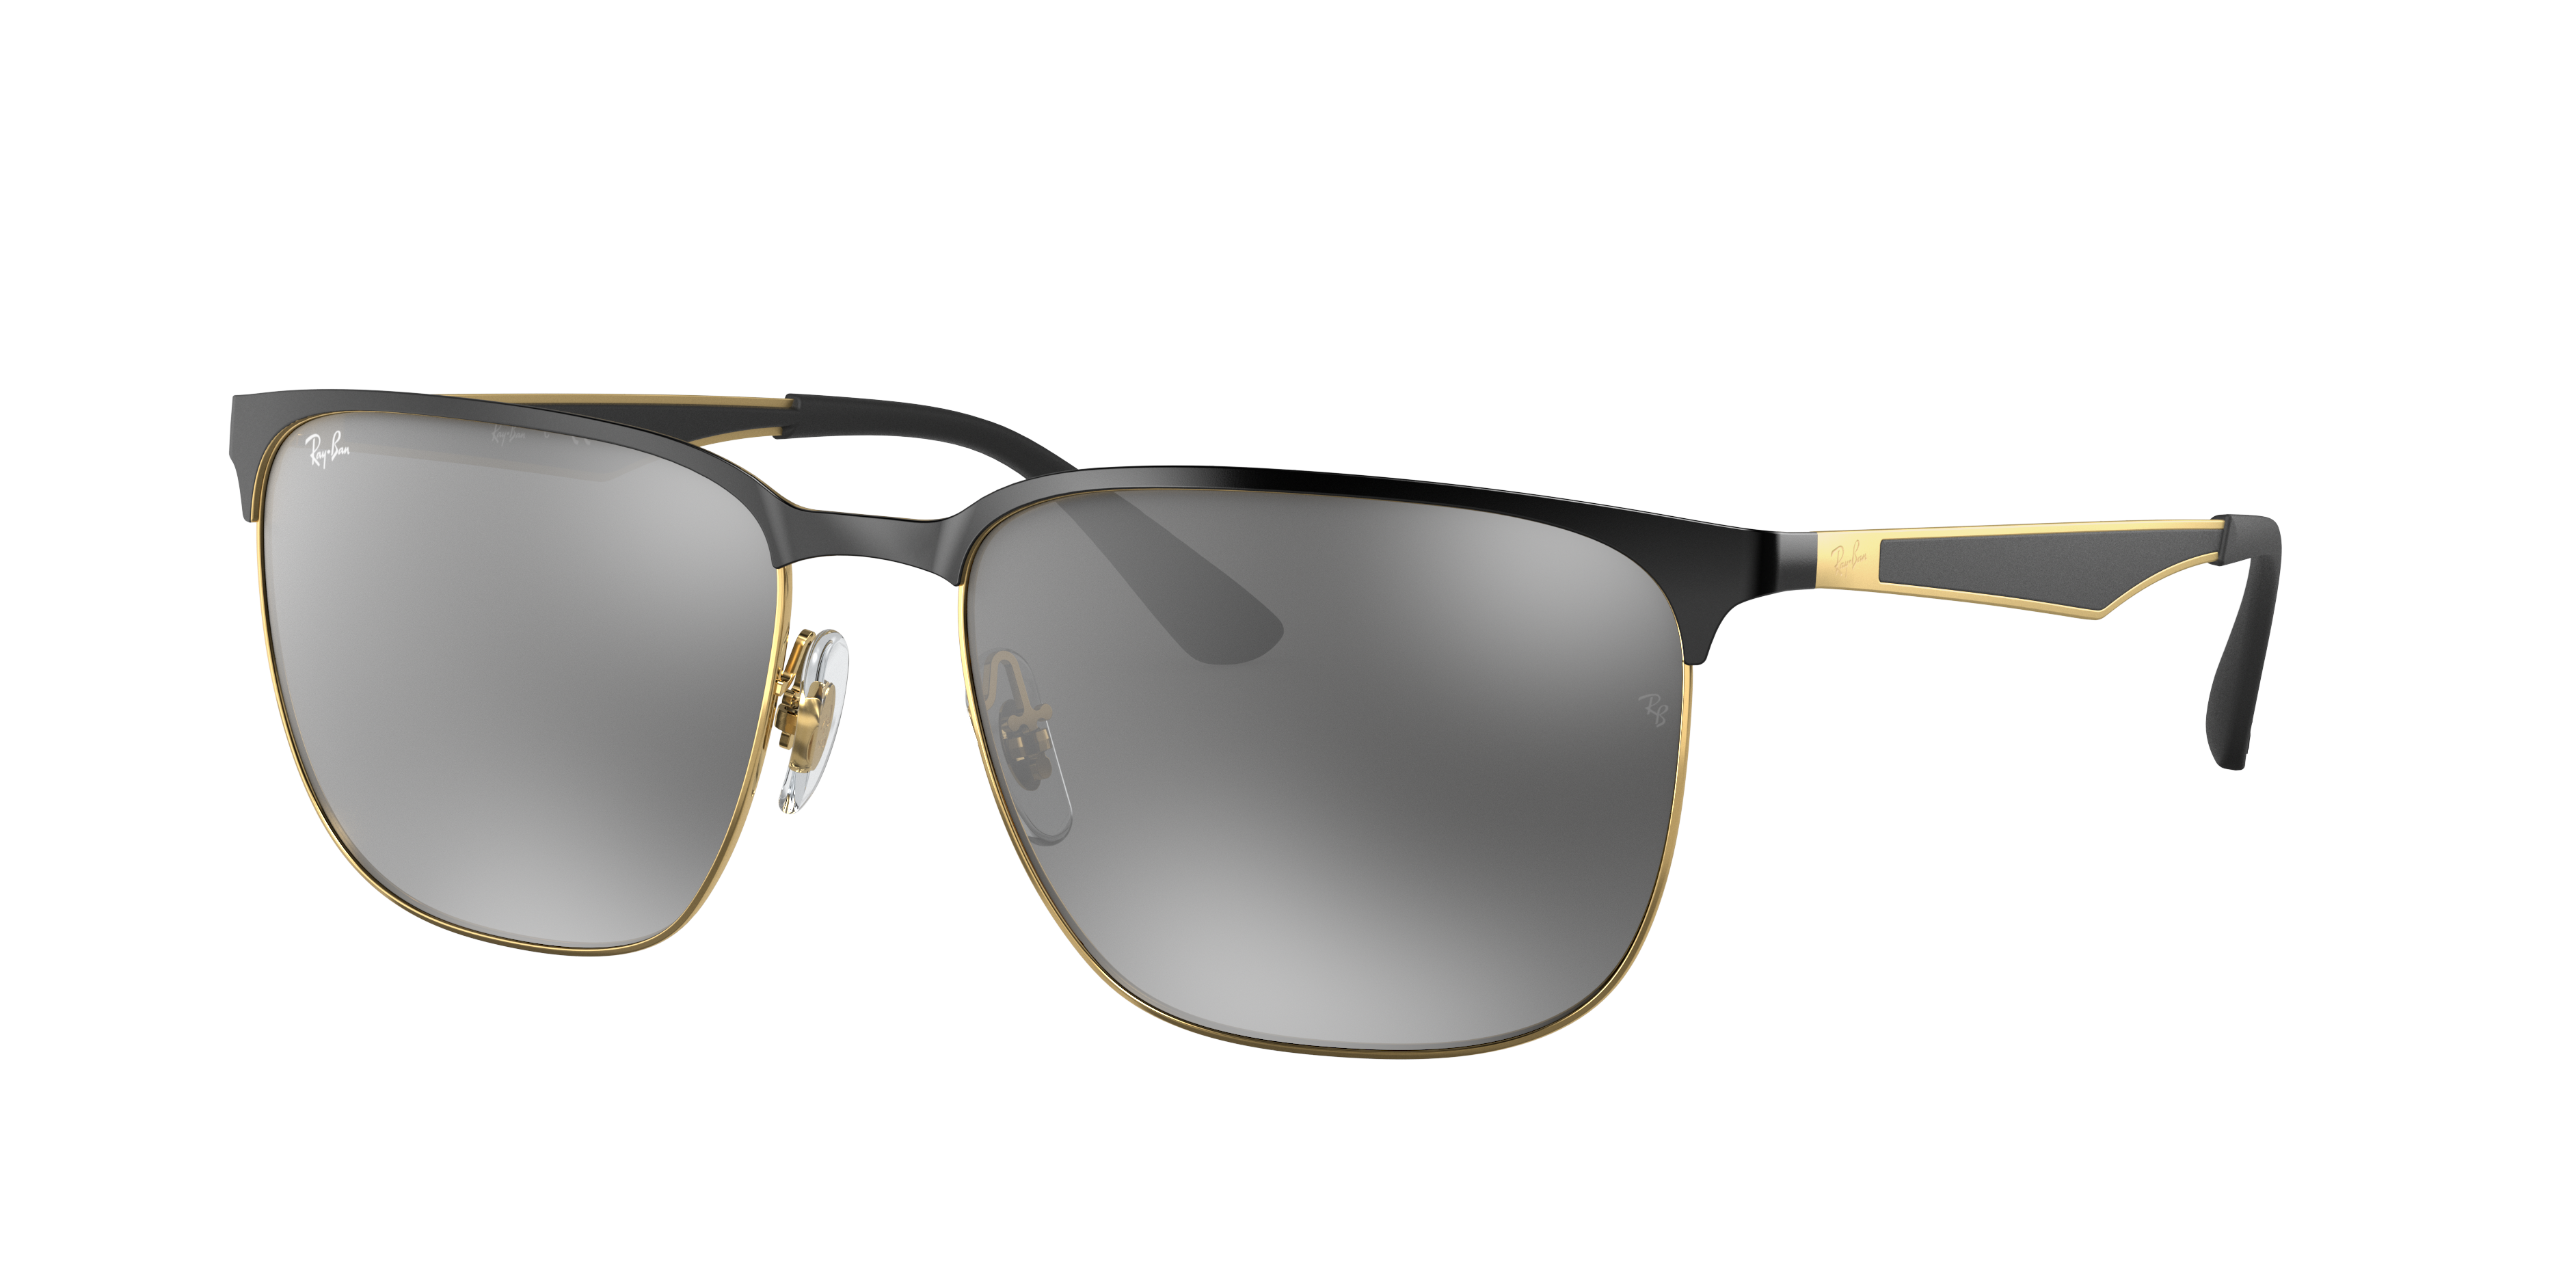 Check out the Rb20 at ray ban.com